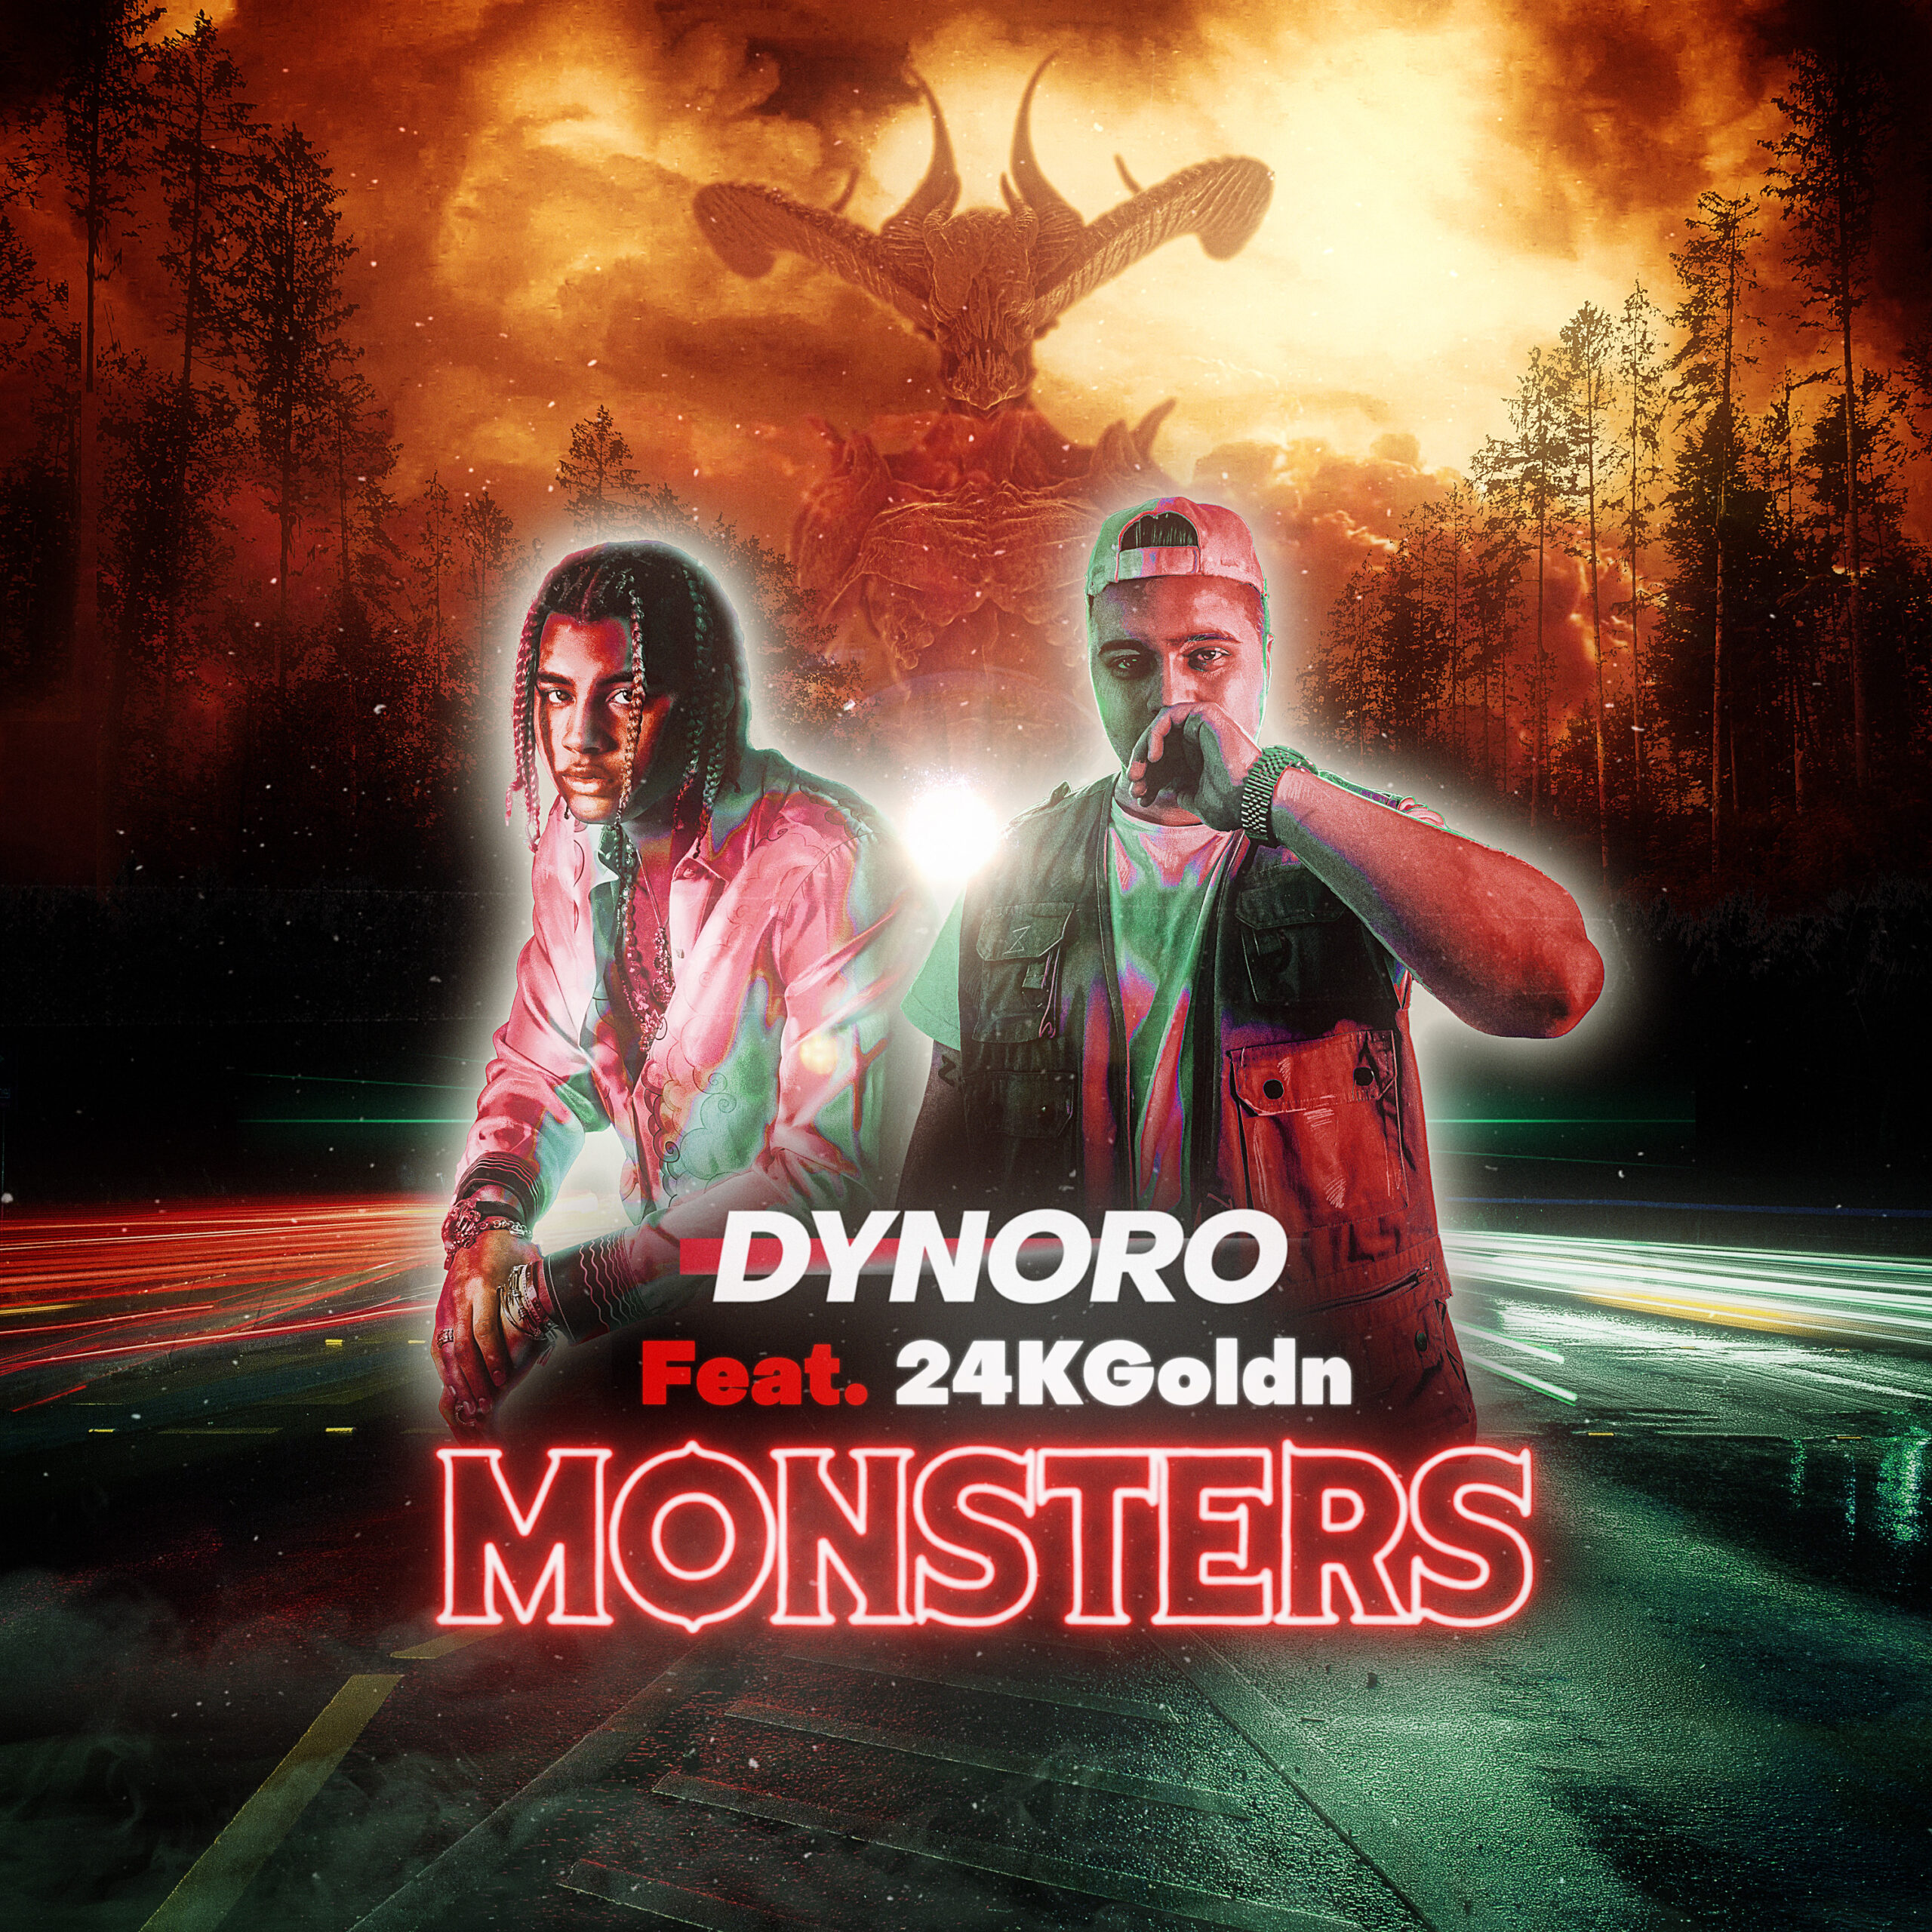 DYNORO Feat 24KGoldn MONSTERS COVER scaled